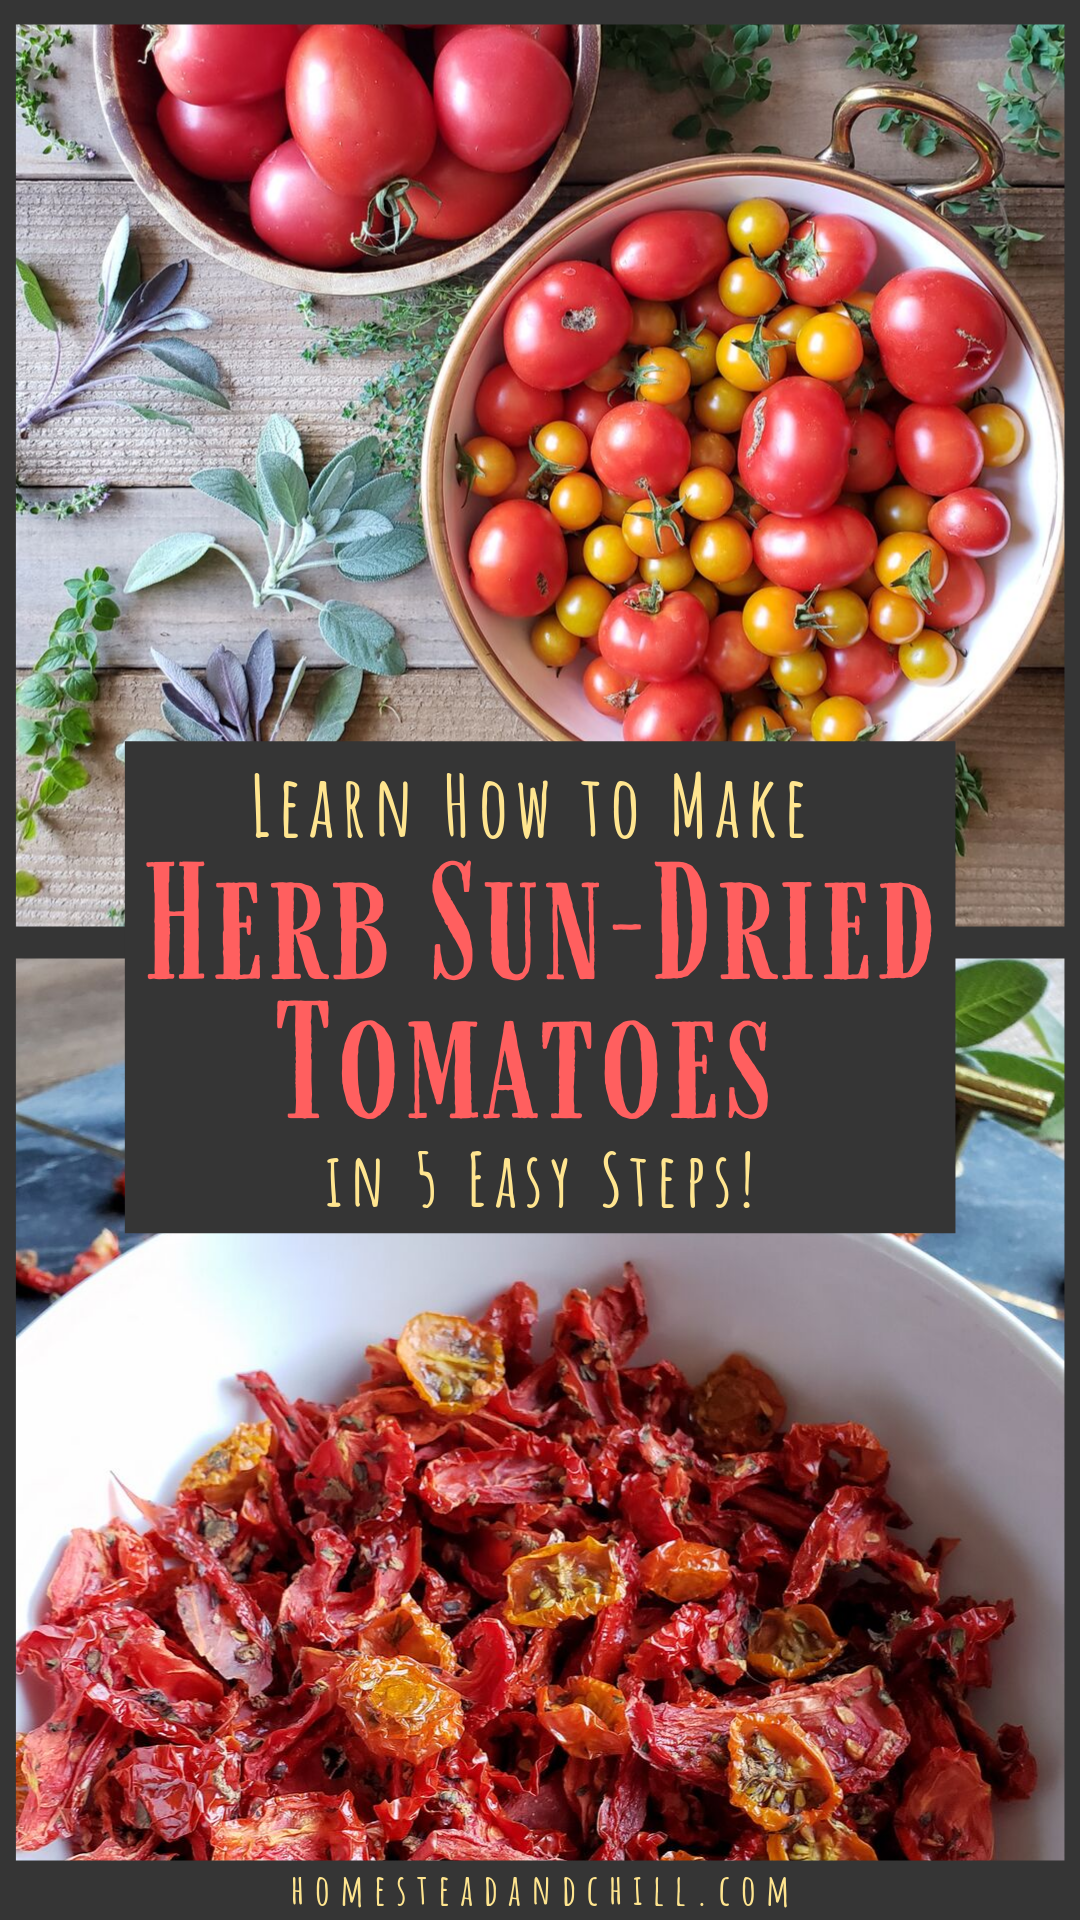 Preserving Tomatoes How To Make Herb Sun Dried Tomatoes In 5 Easy Steps Homestead And Chill Recipe Sun Dried Tomato Dried Tomatoes Oven Dried Tomatoes